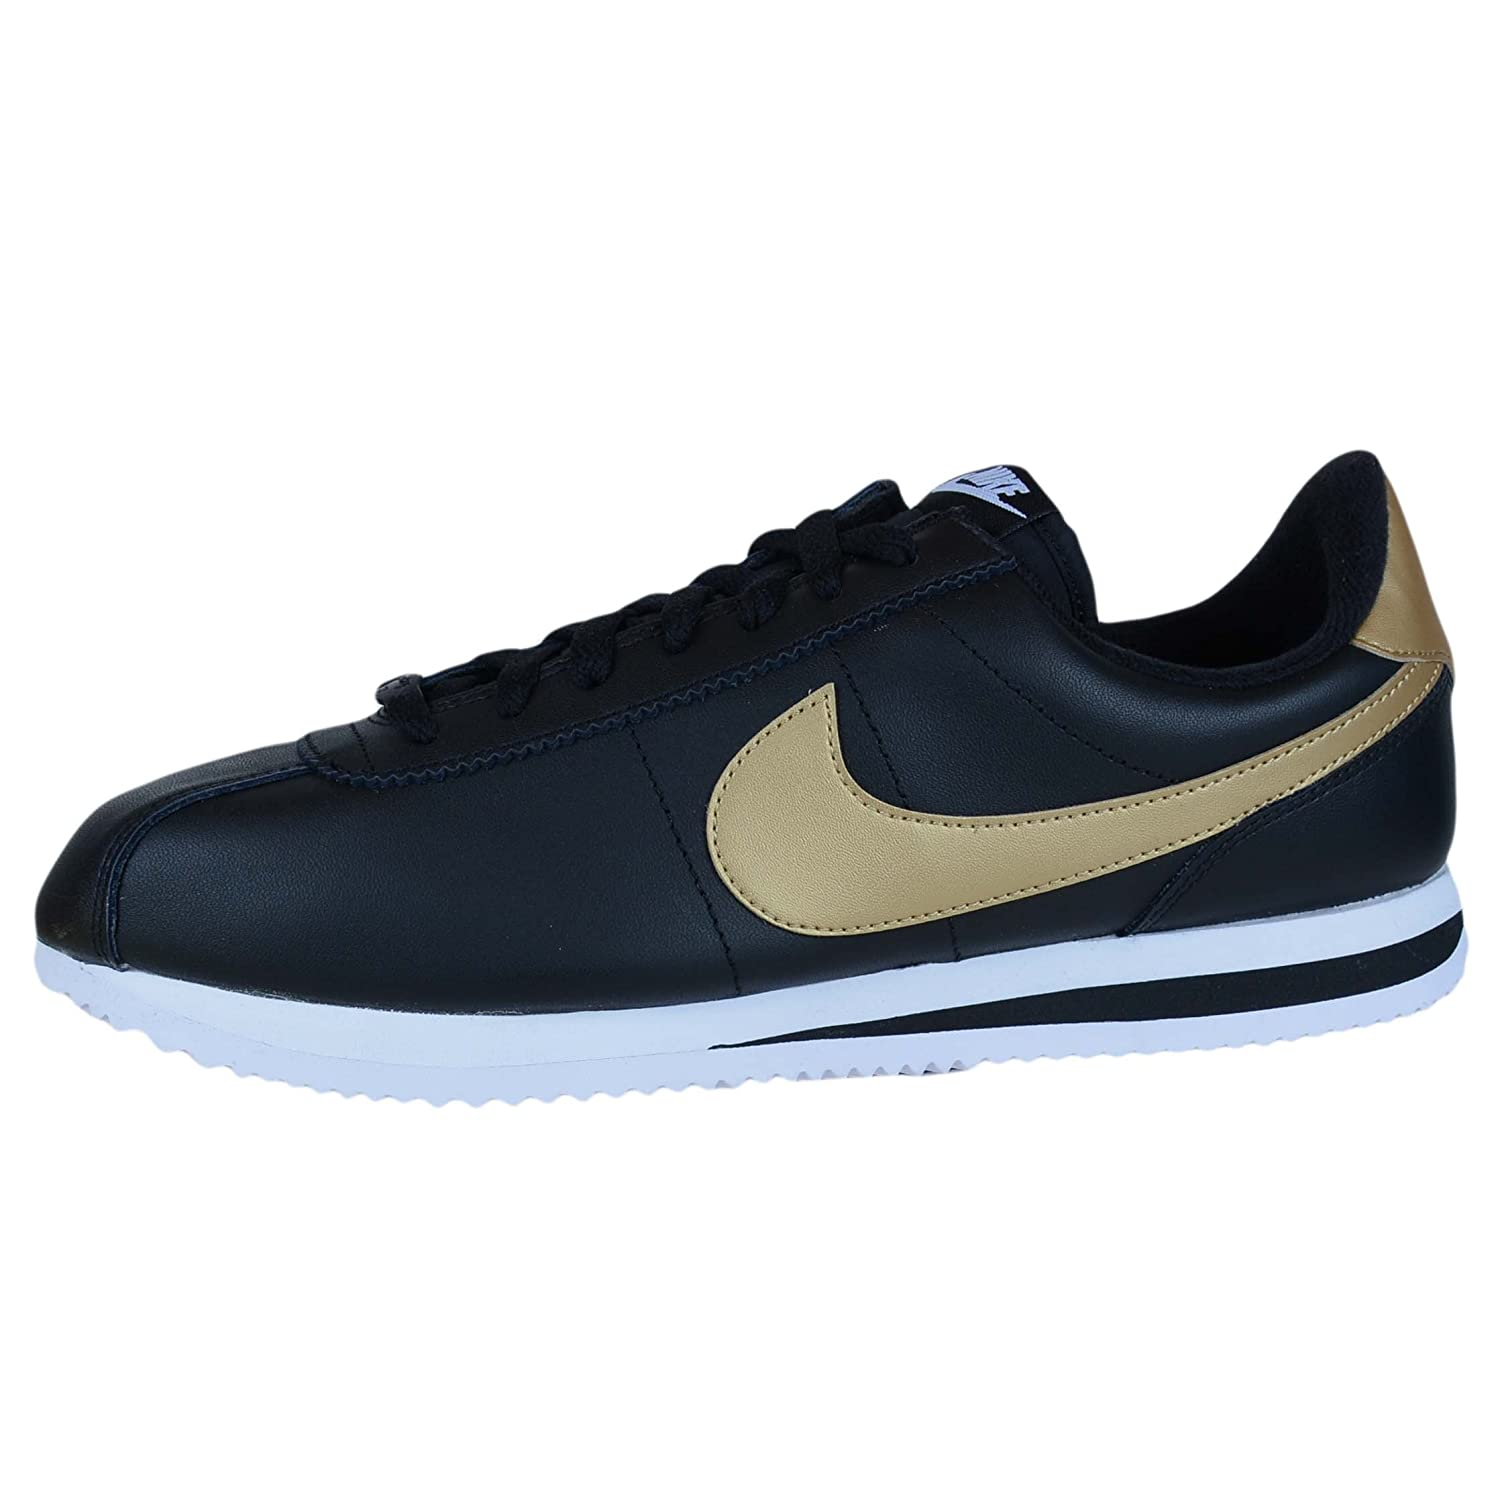 new style b05ed d1811 Amazon.com   Nike Men s Classic Cortez Leather Running Shoes   Road Running